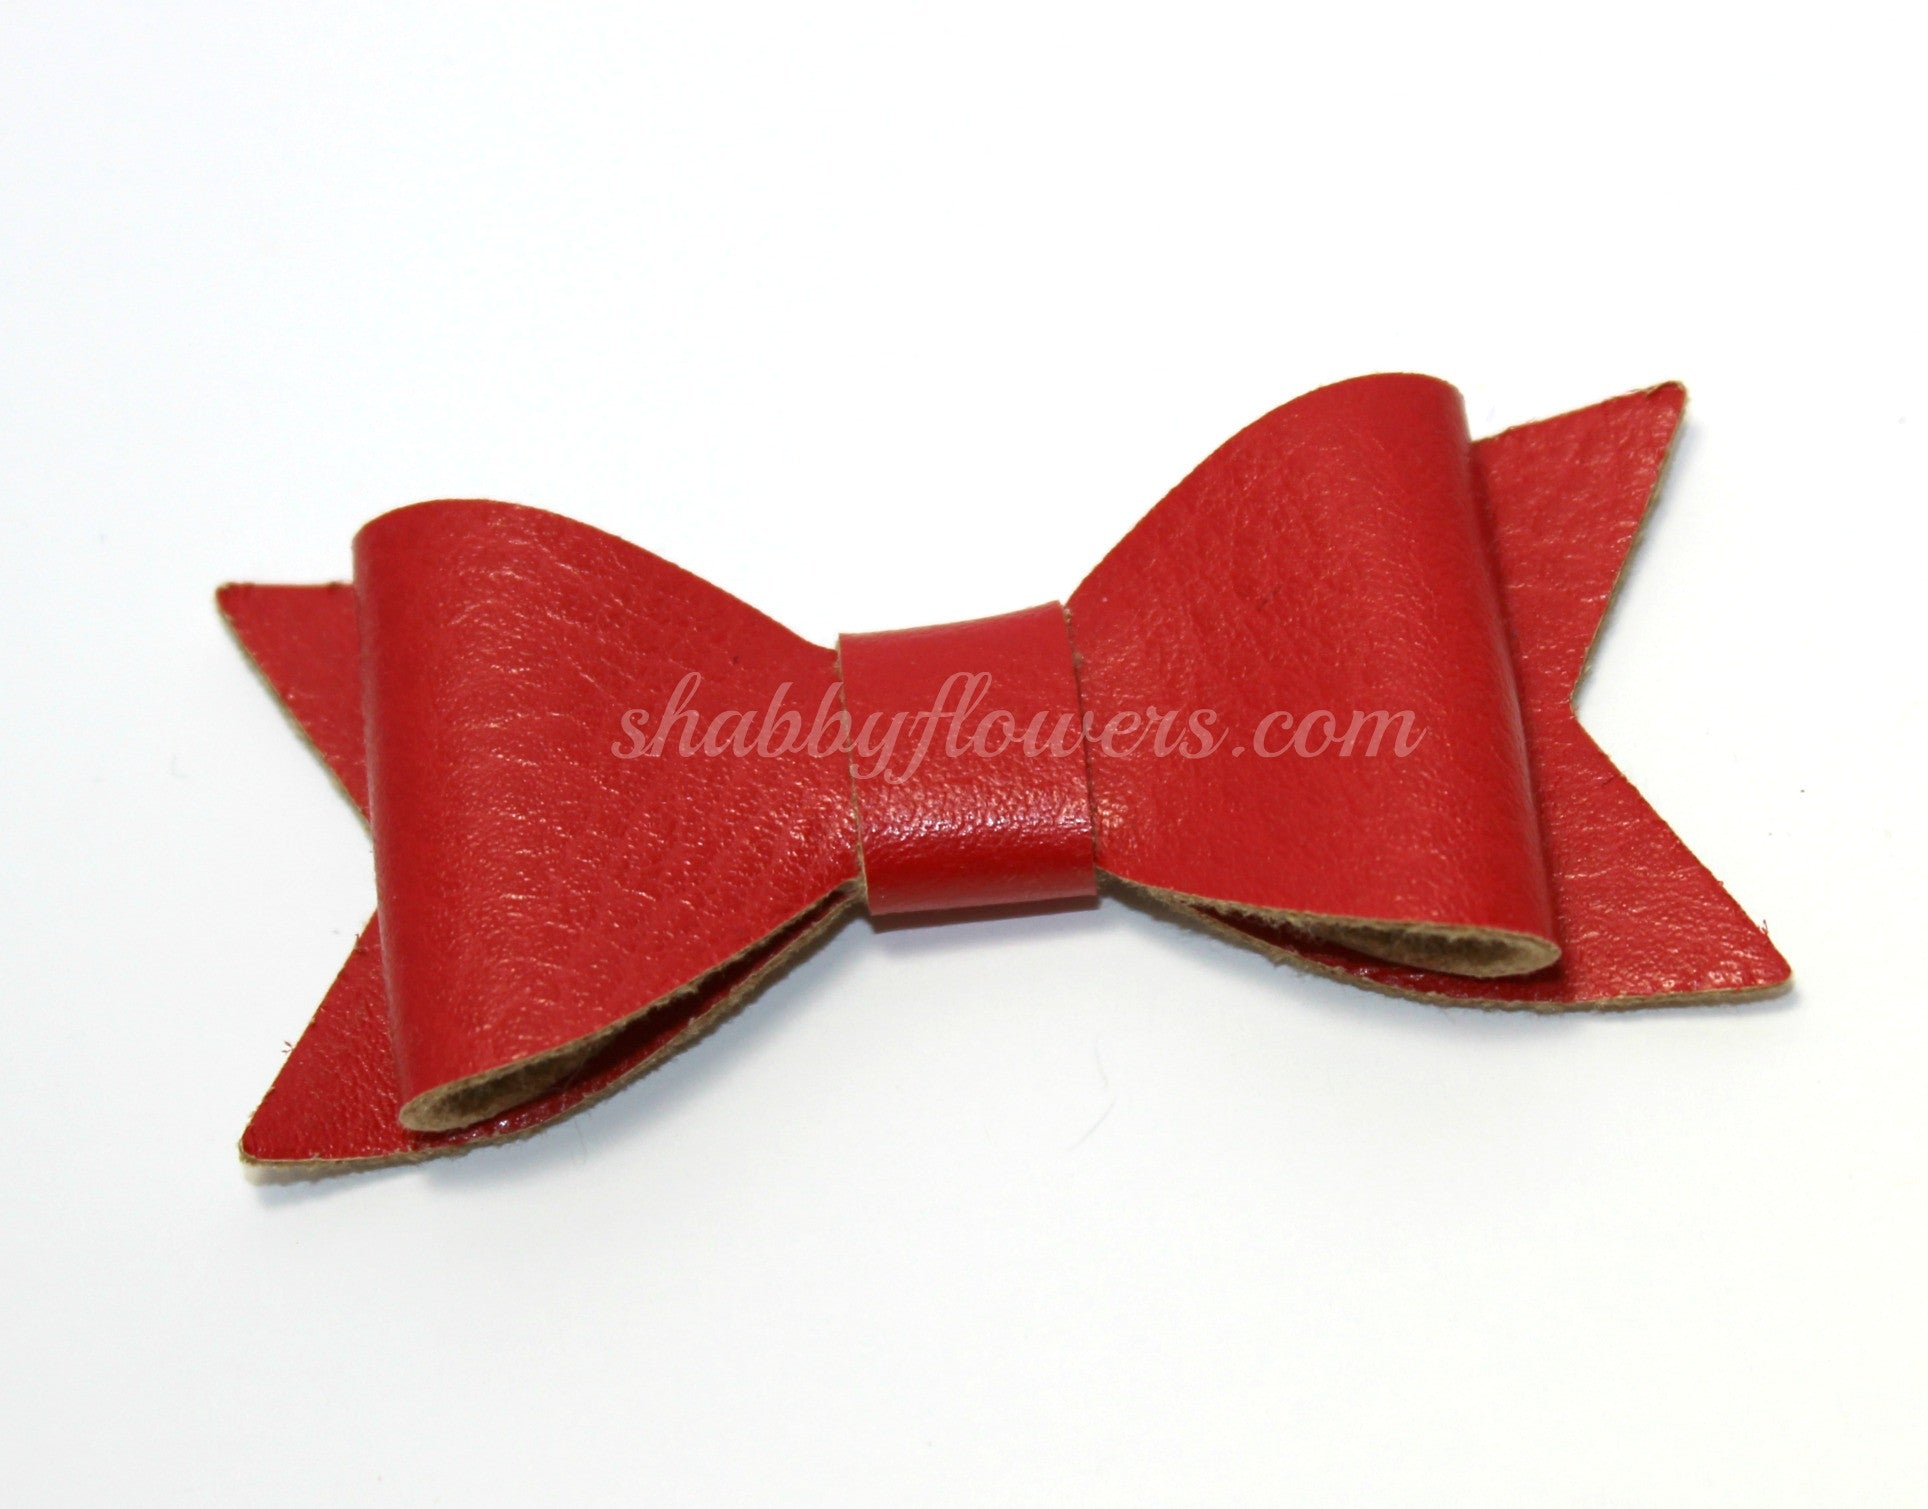 Faux Leather Bow - Red - shabbyflowers.com